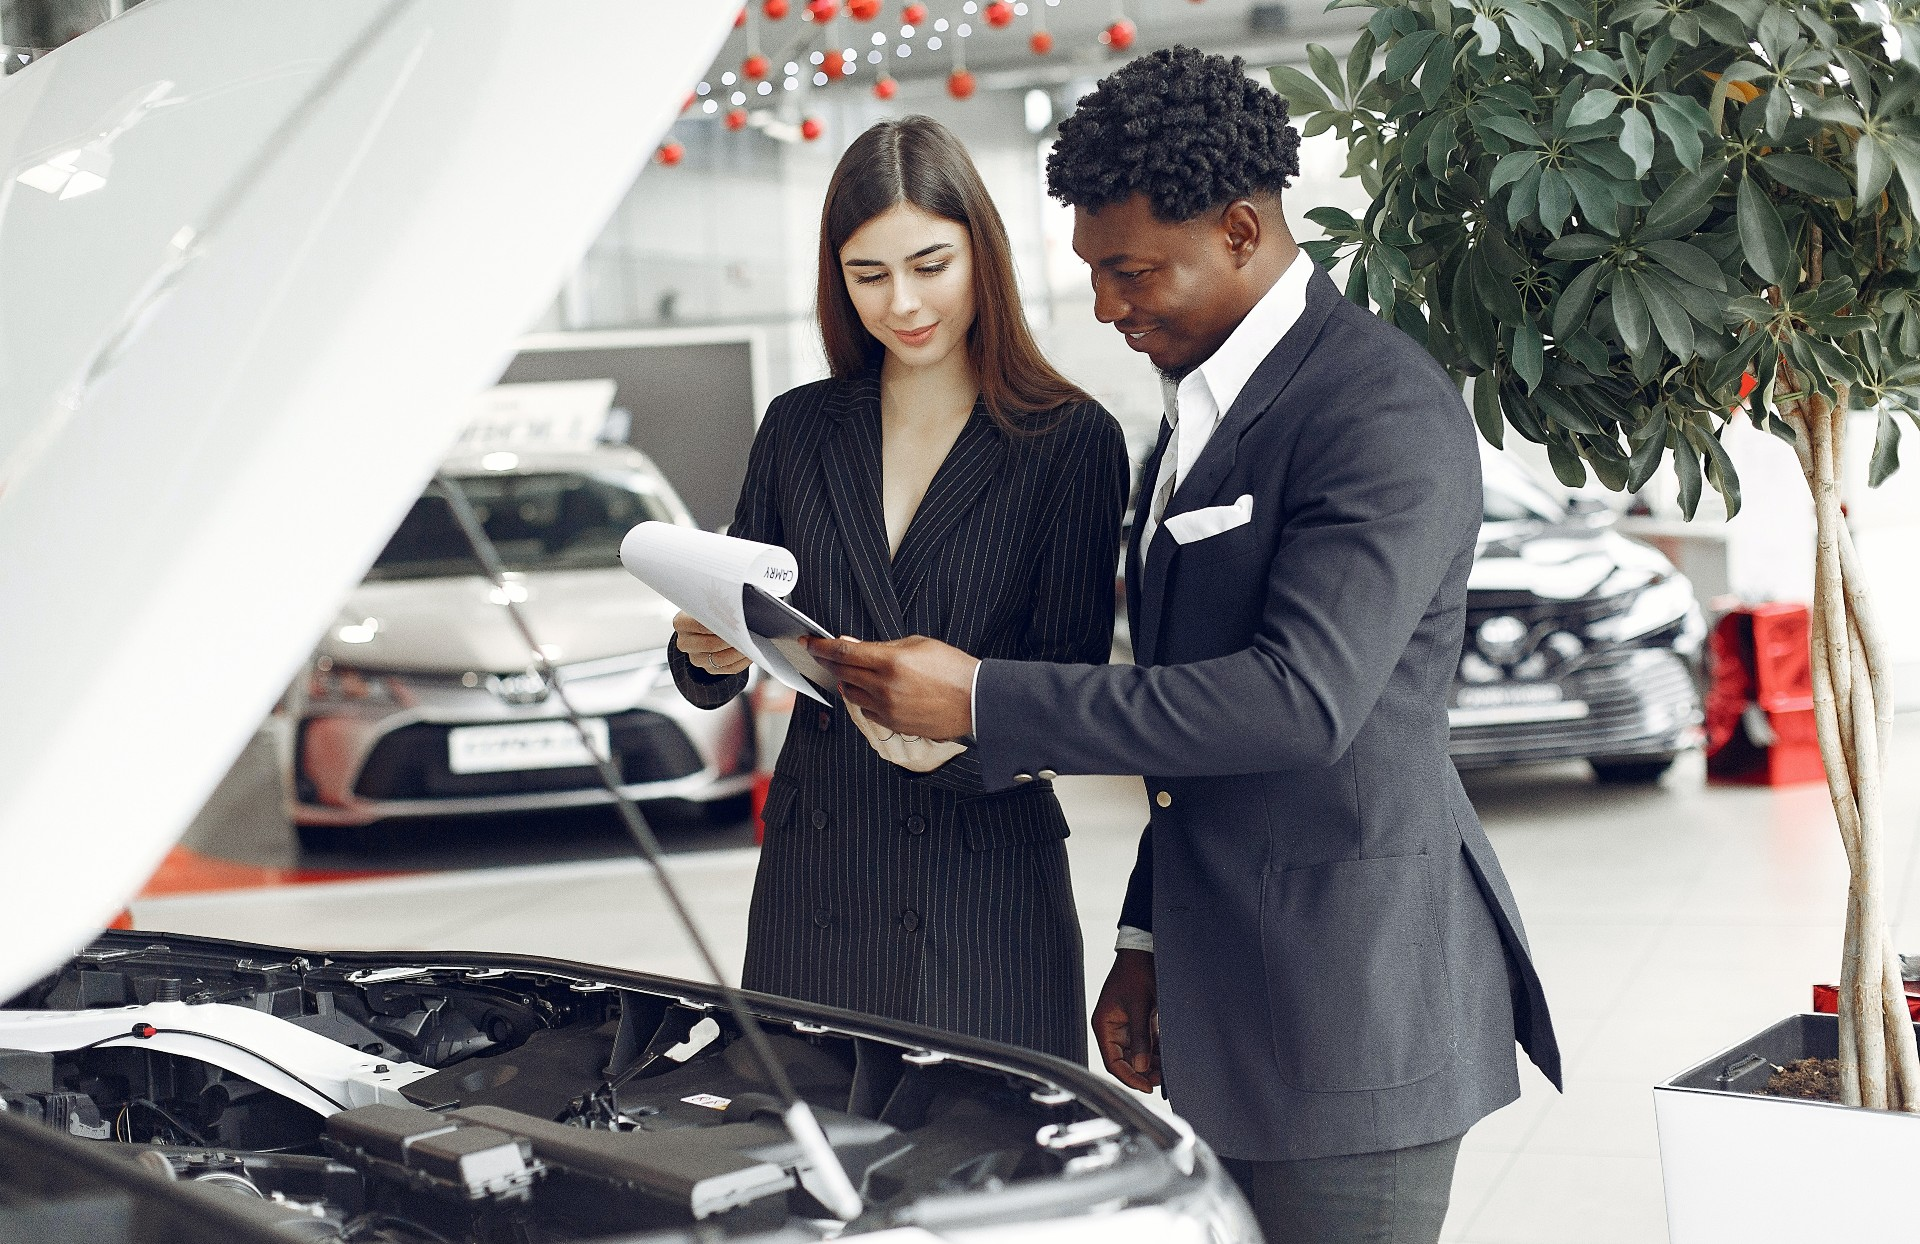 GM incentivizes safe driving with data-driven insurance